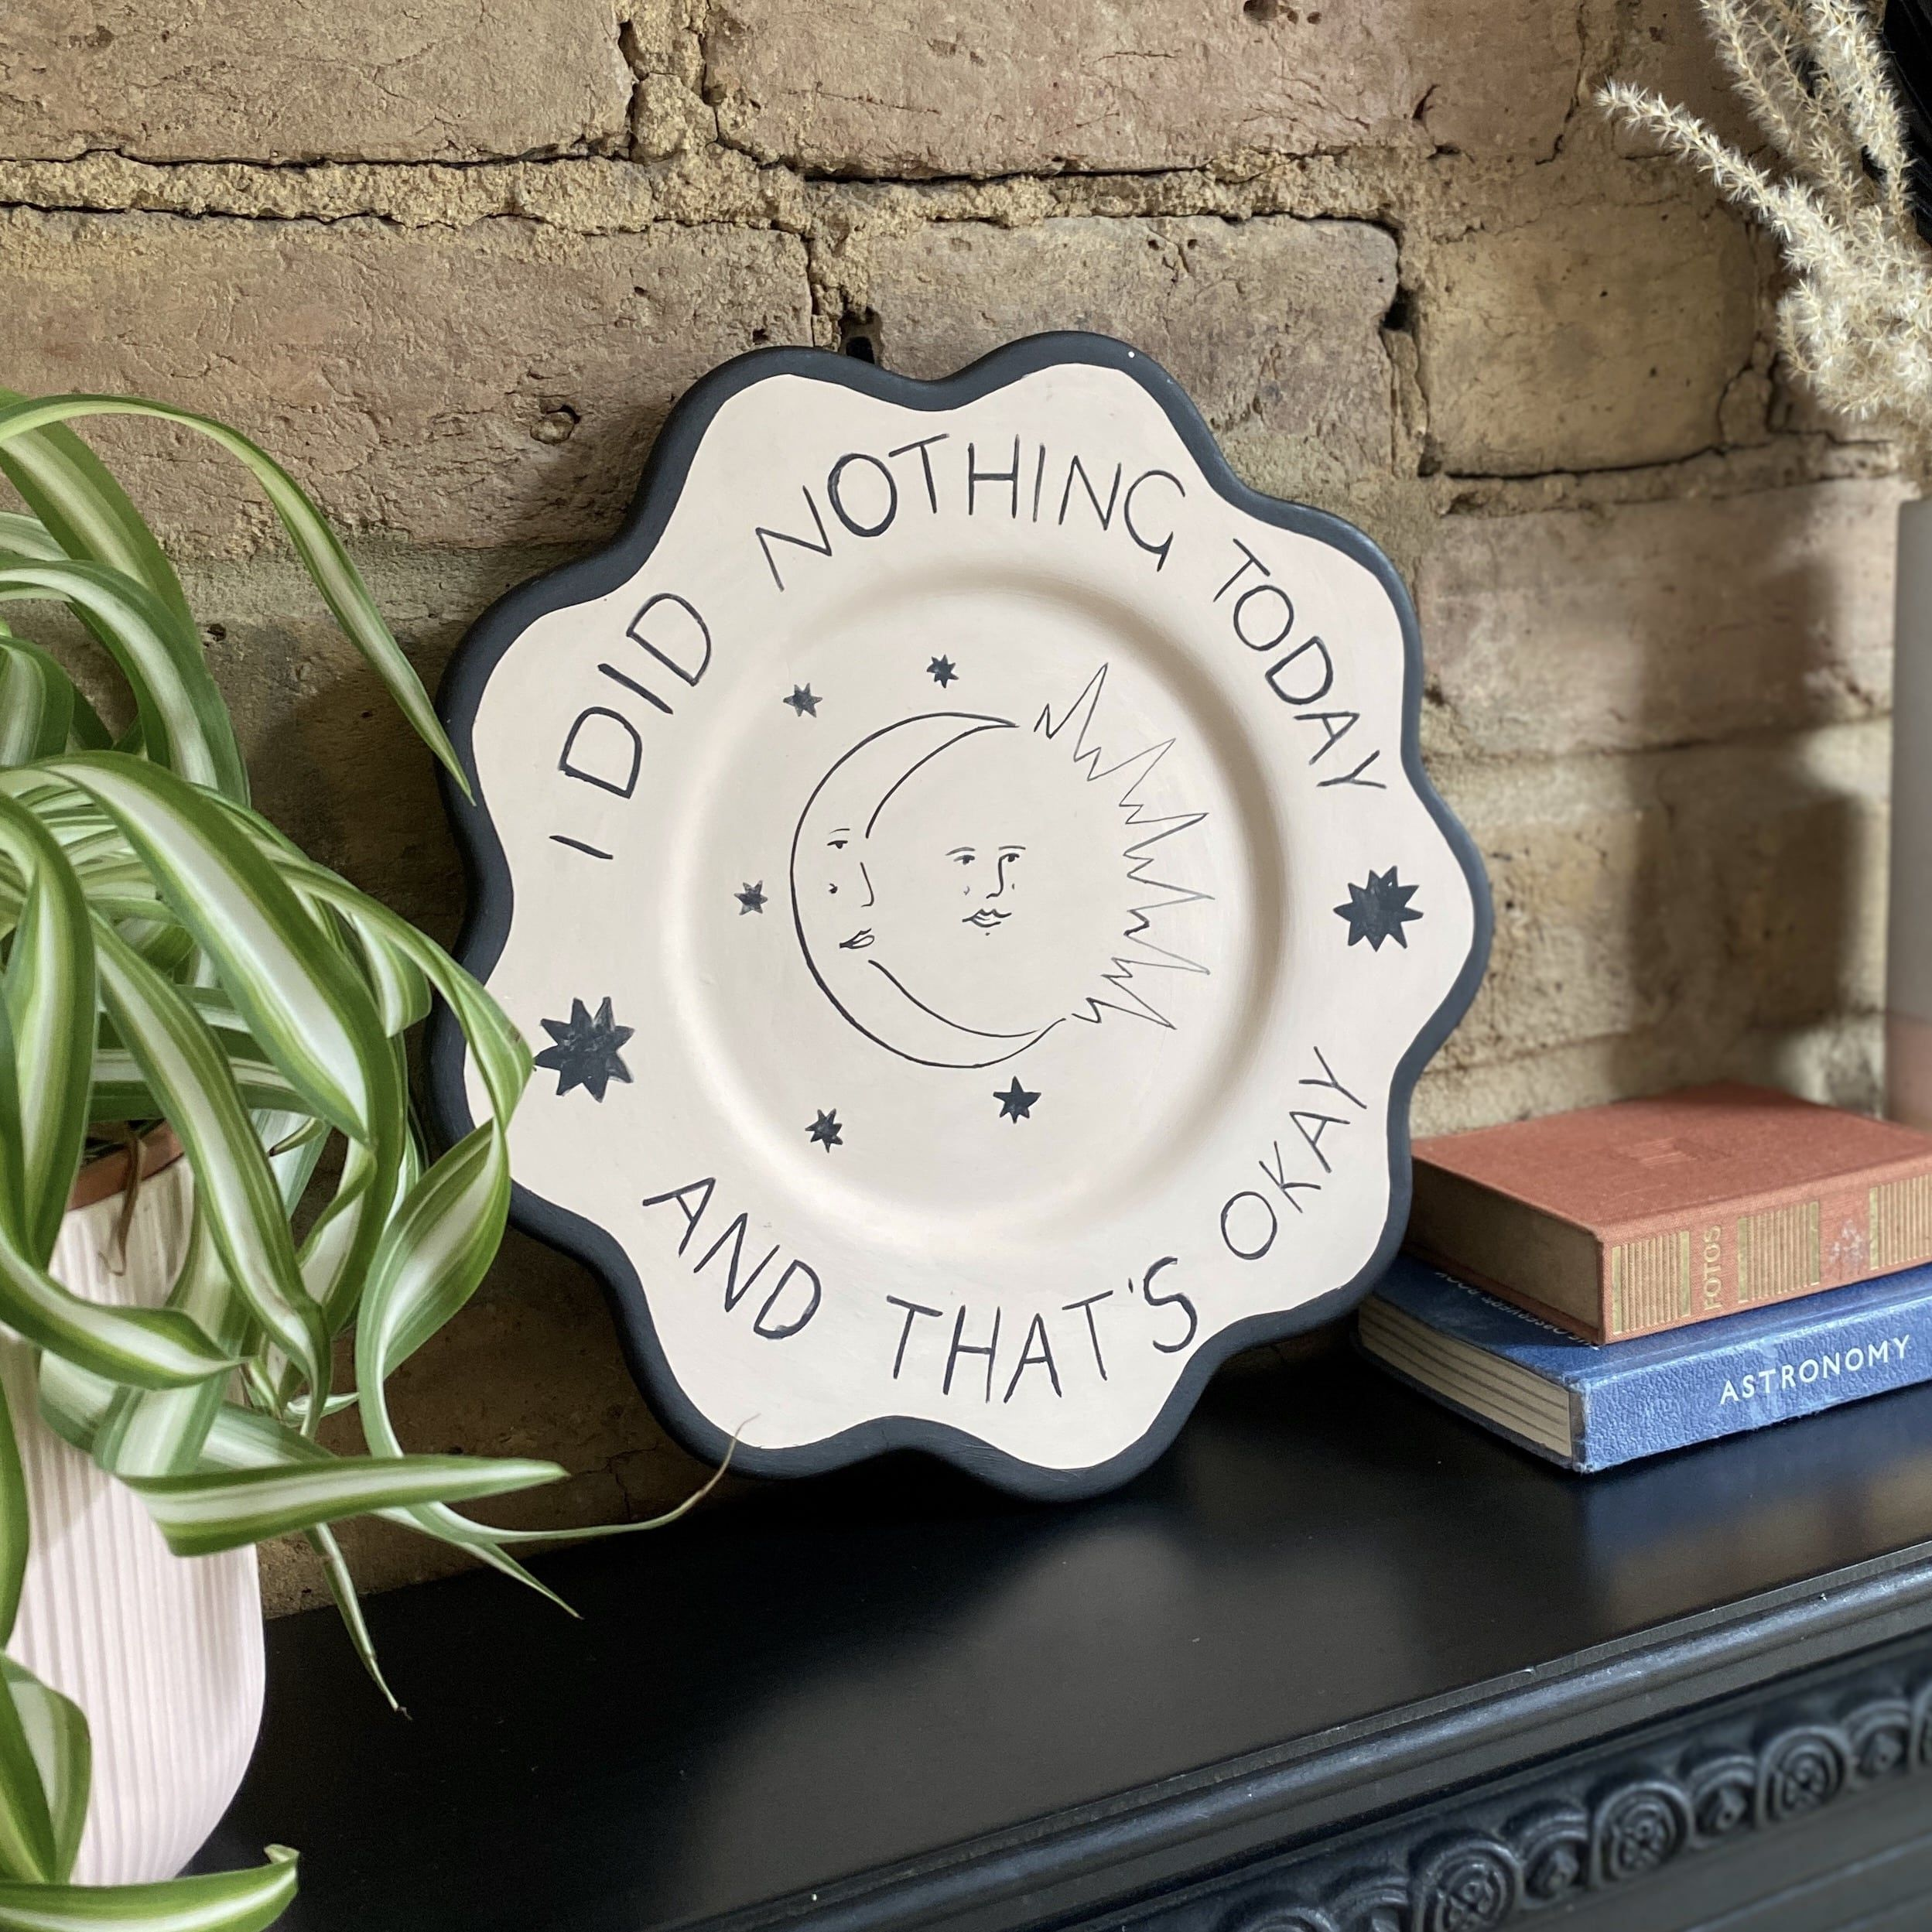 I did nothing today - Hand-painted decorative scalloped plate